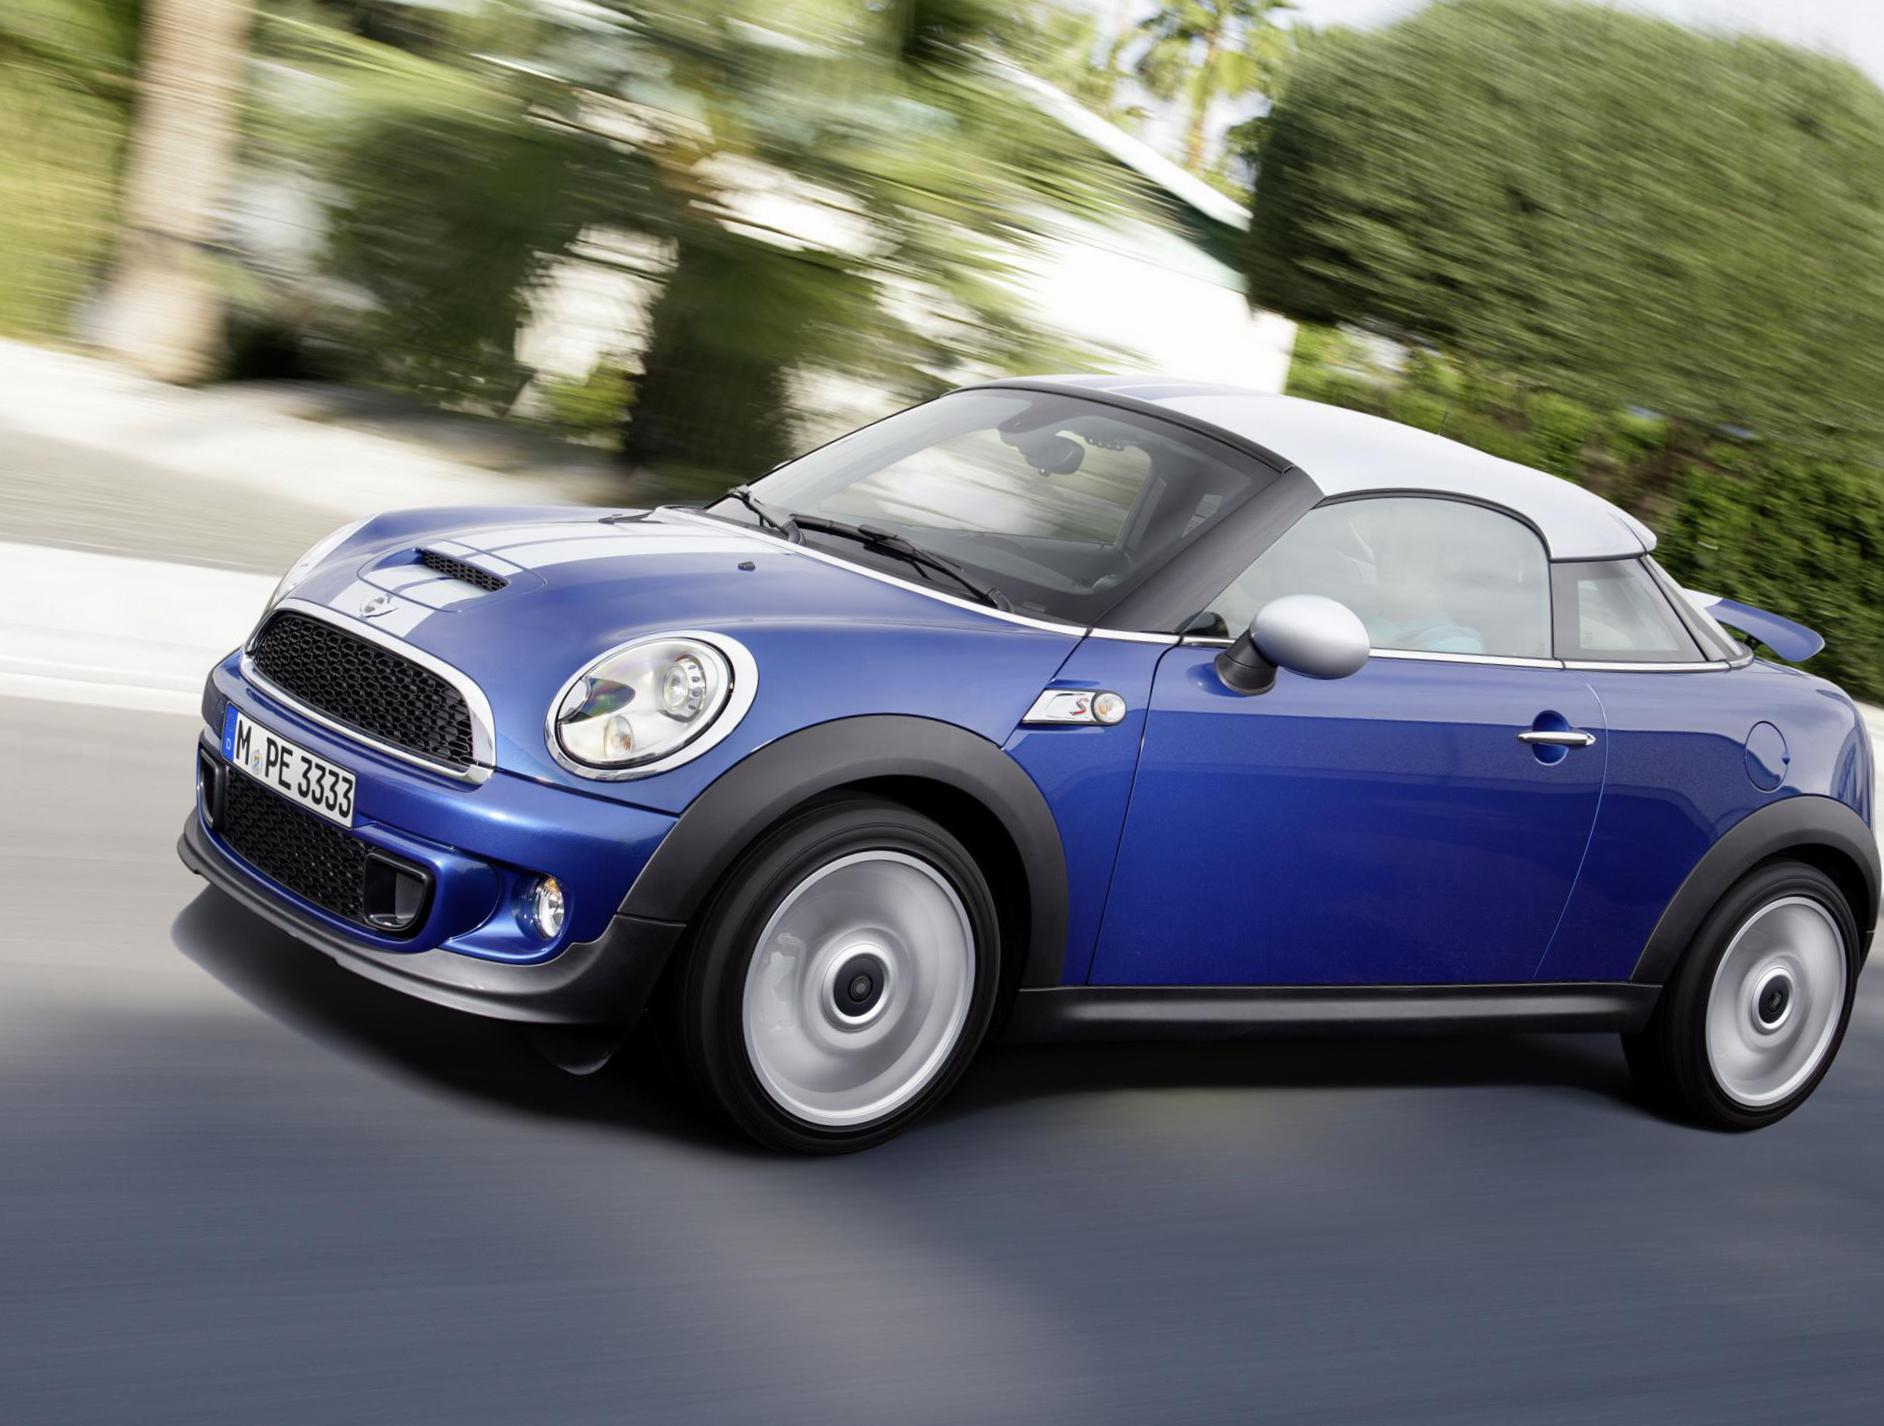 Cooper S Coupe MINI auto 2009